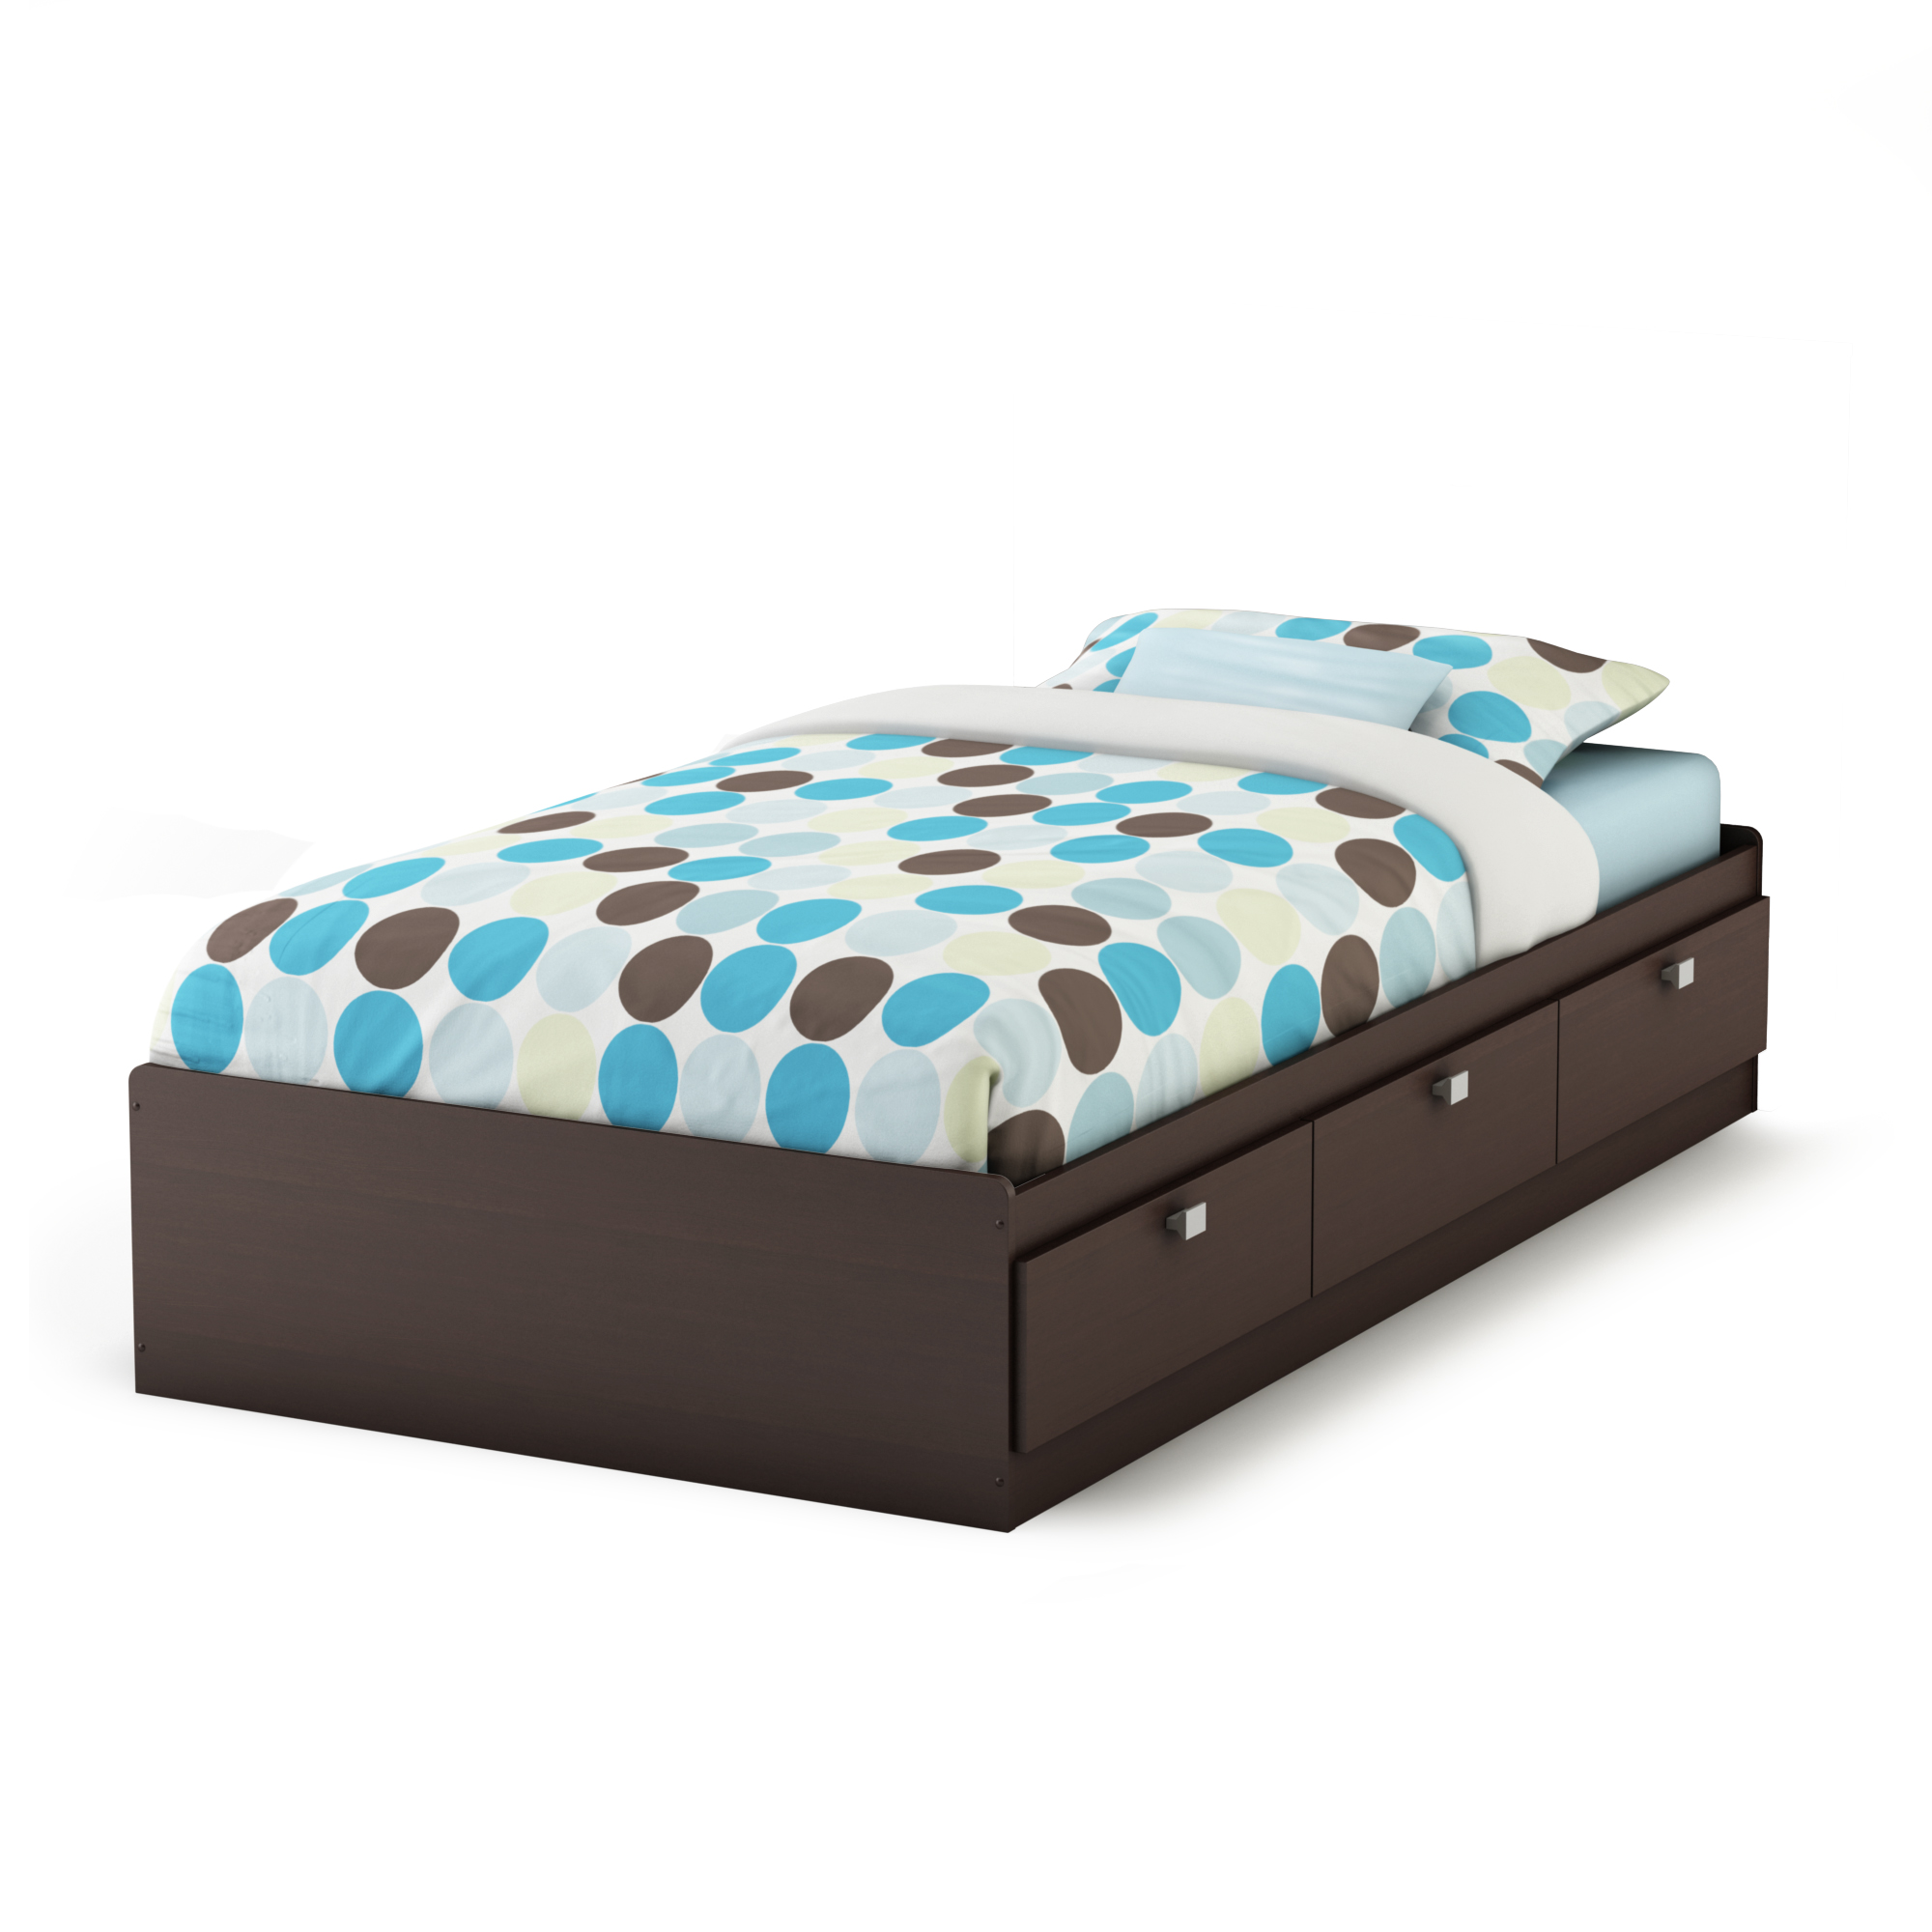 "South Shore Spark Collection Twin 39"" Mates Bed, Multiple Finishes"